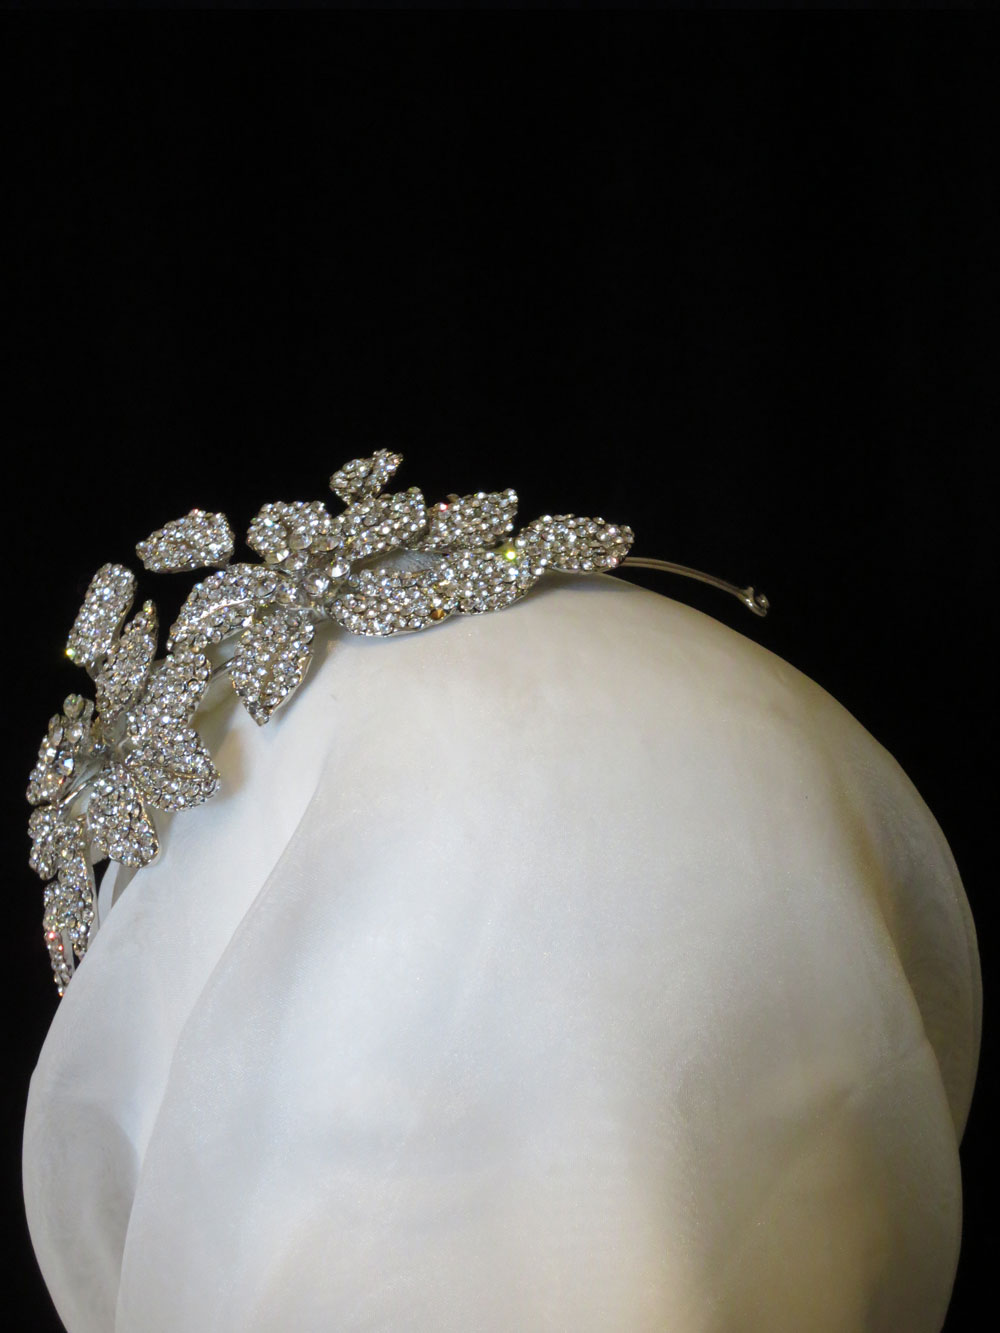 John-Zimmerman-Couture-Headpieces-and-Tiaras-Model-Pretty-Gallery-Image-2